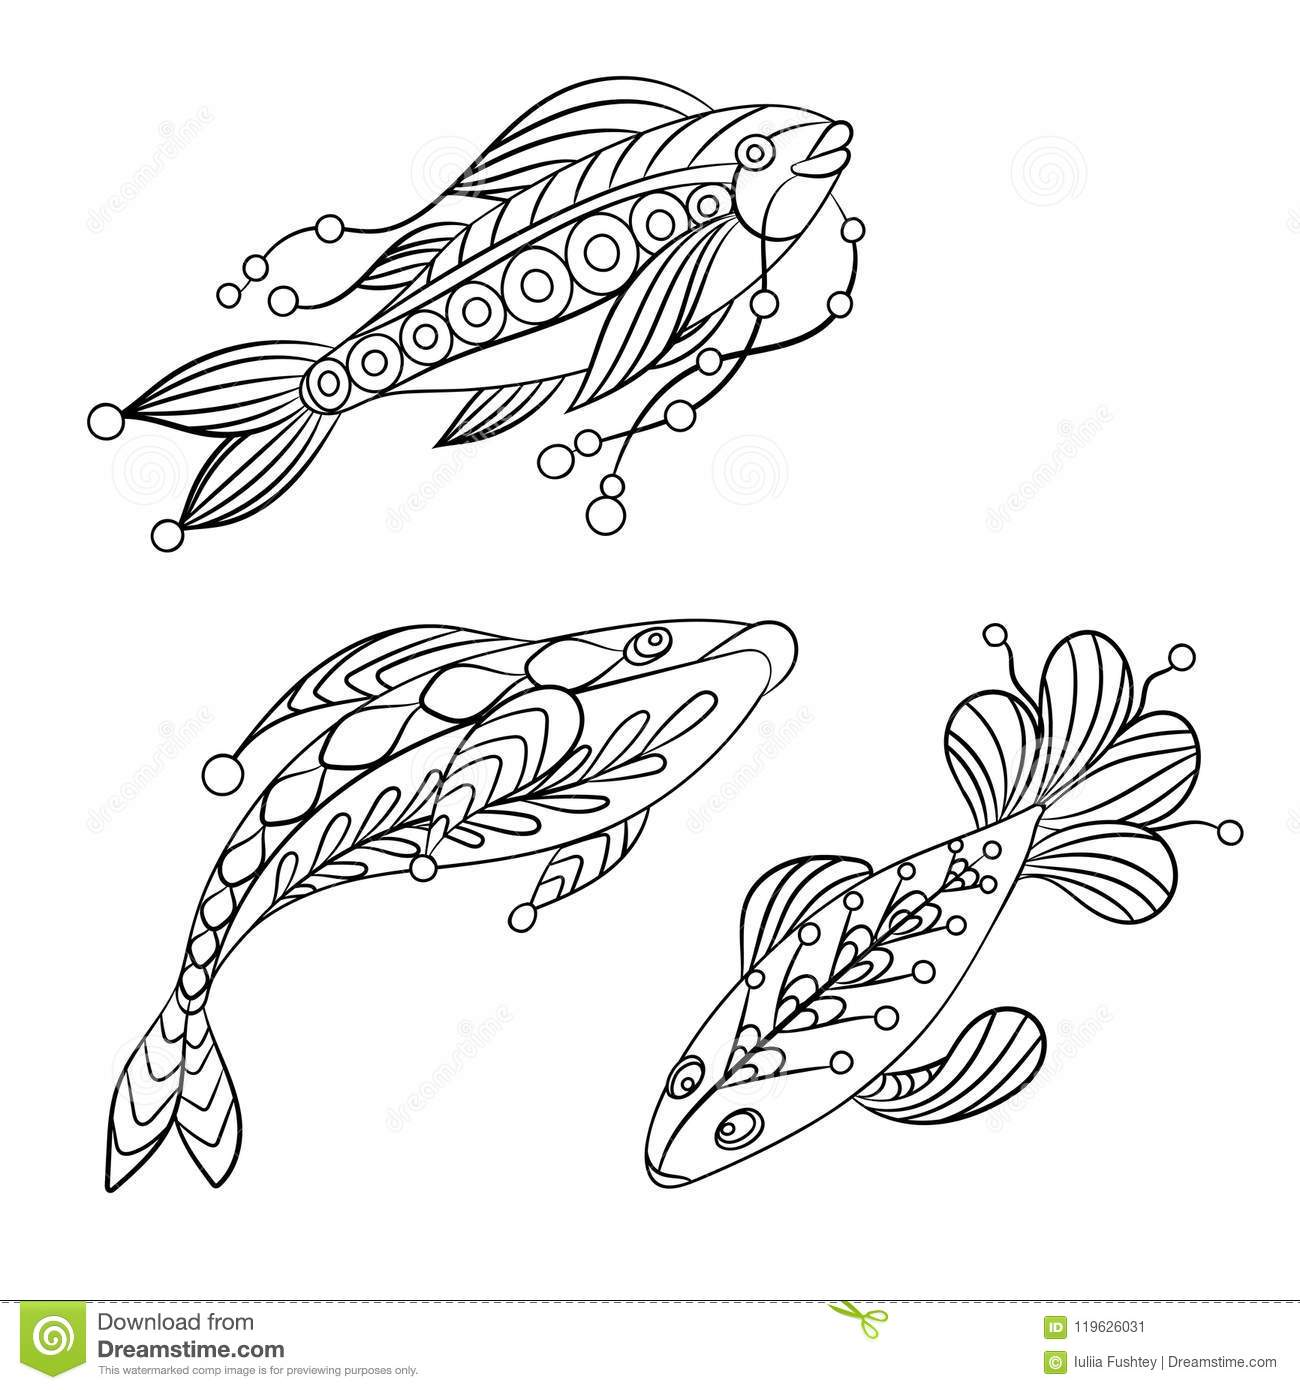 Coloring Pages For Children And Adults With Set Of Ocean Fishes ...